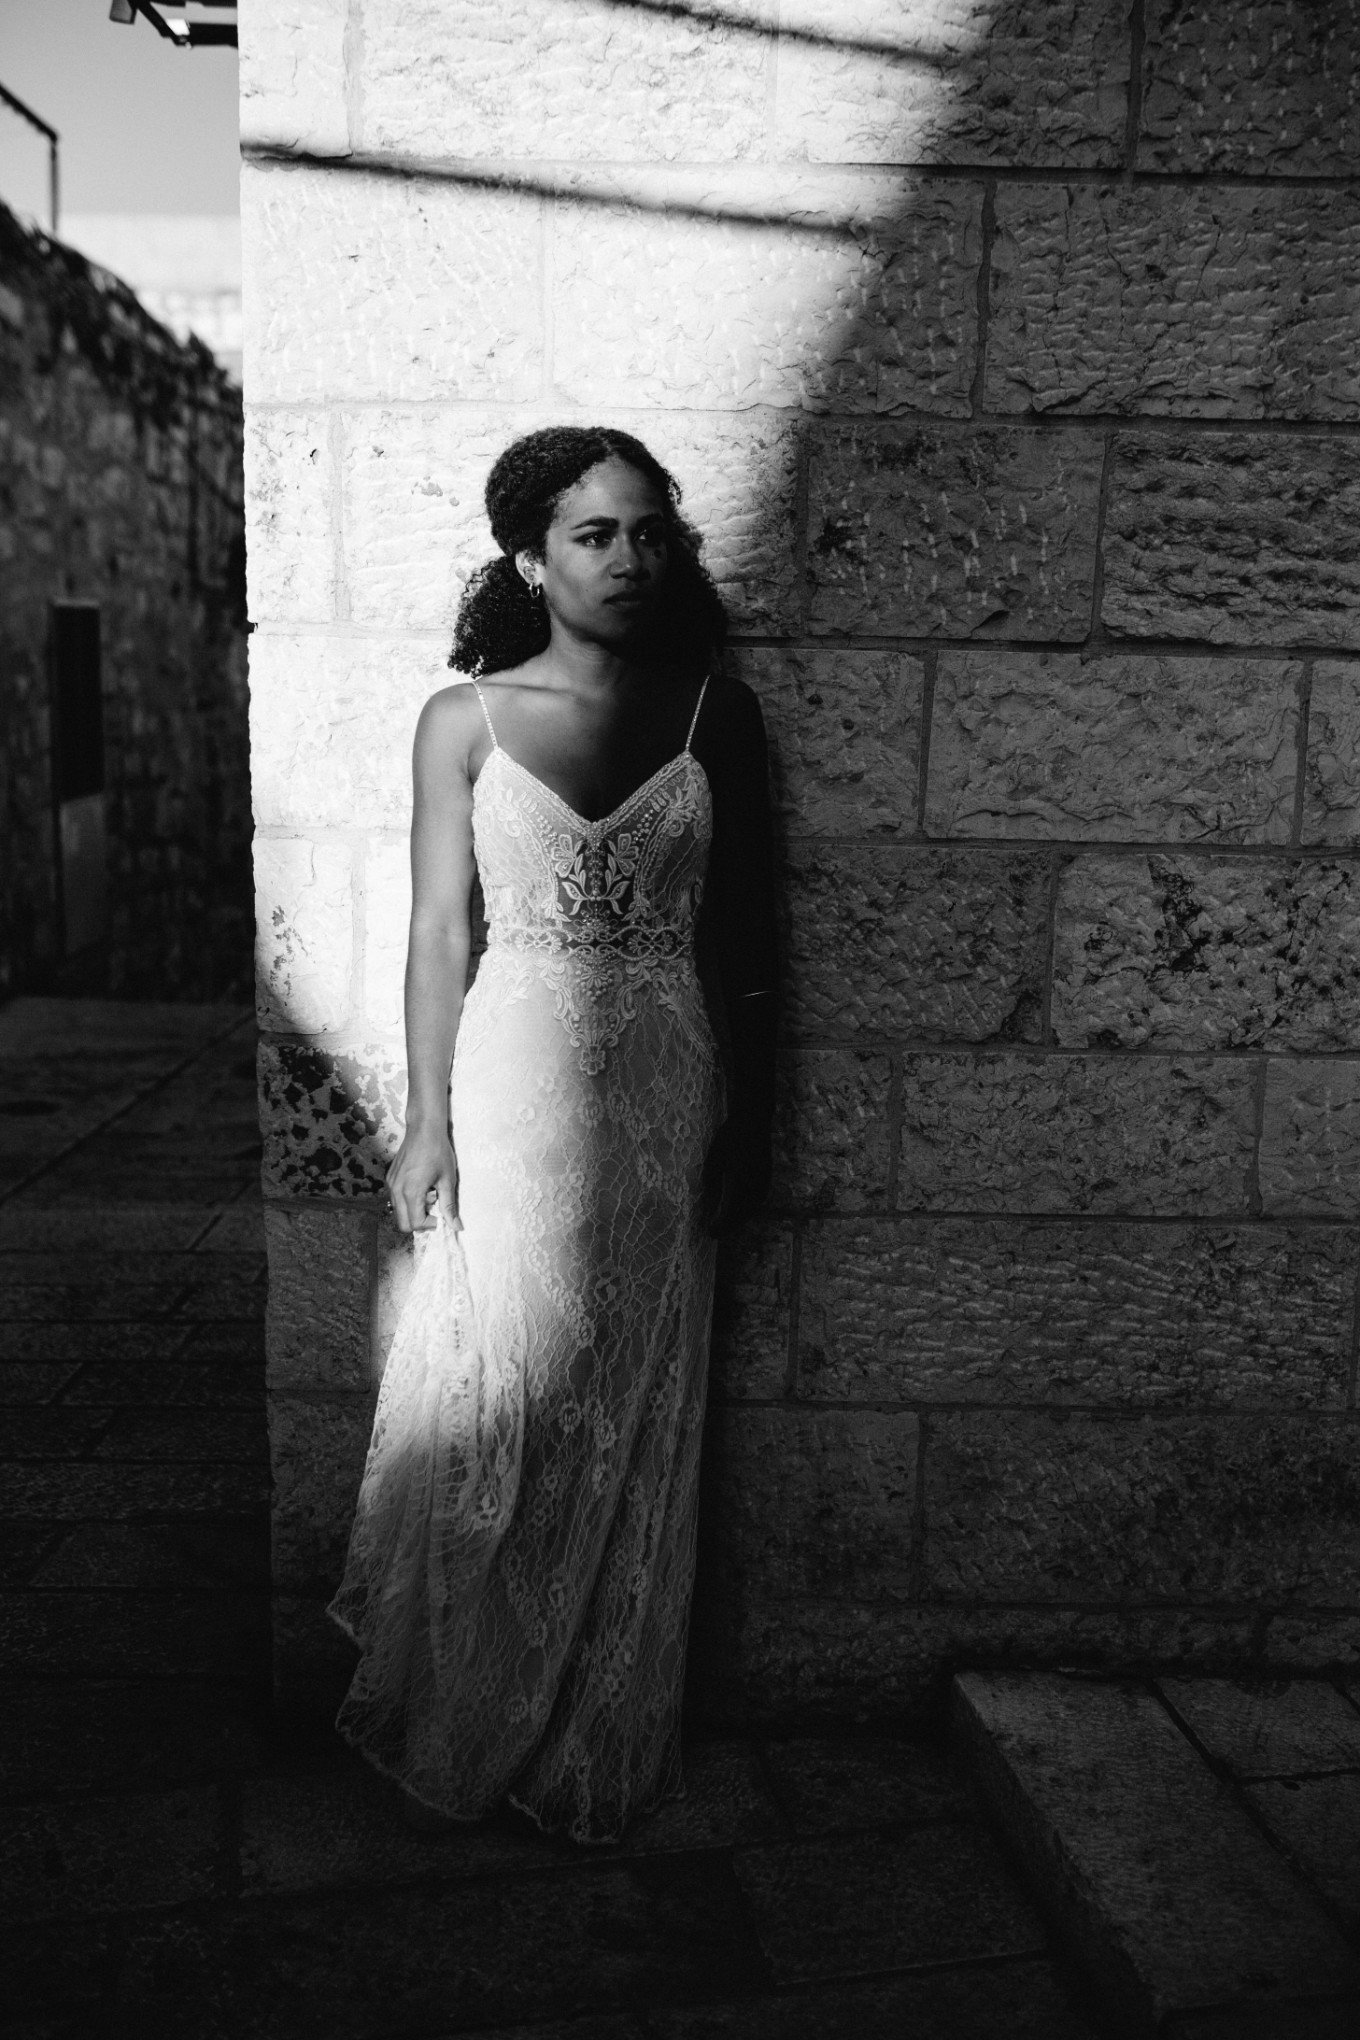 Jerusalem-Pia-Anna-Christian-Wedding-Photography-AD-C-55.jpg